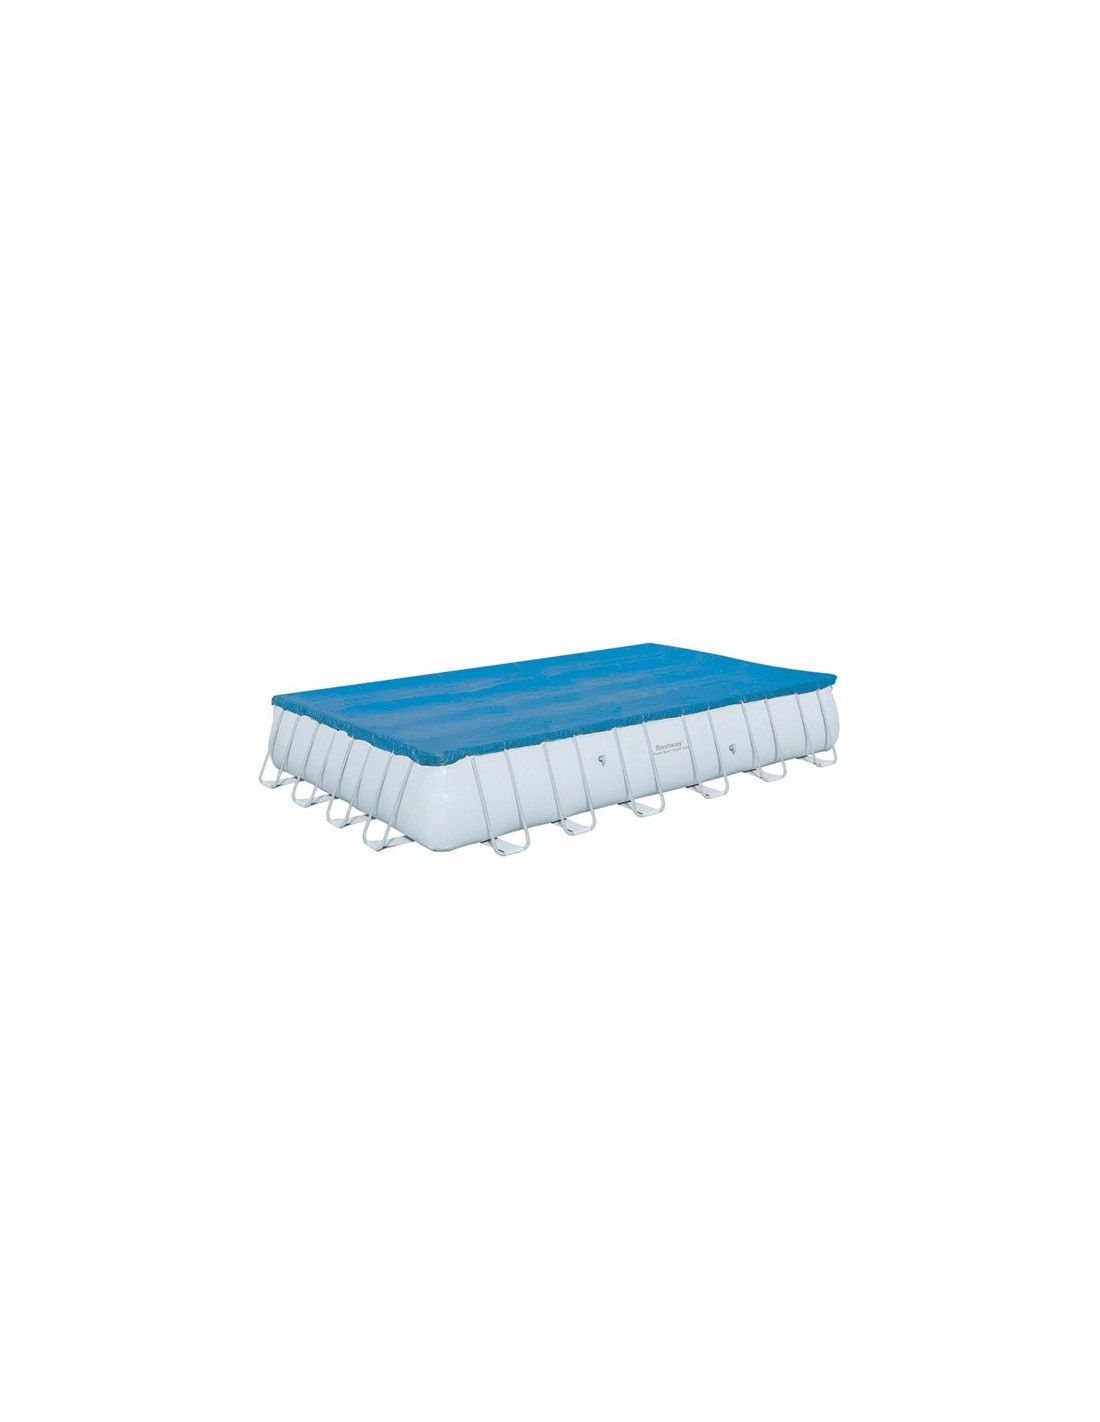 Piscine rectangulaire tubulaire bestway avec filtre sable for Piscine tubulaire rectangulaire